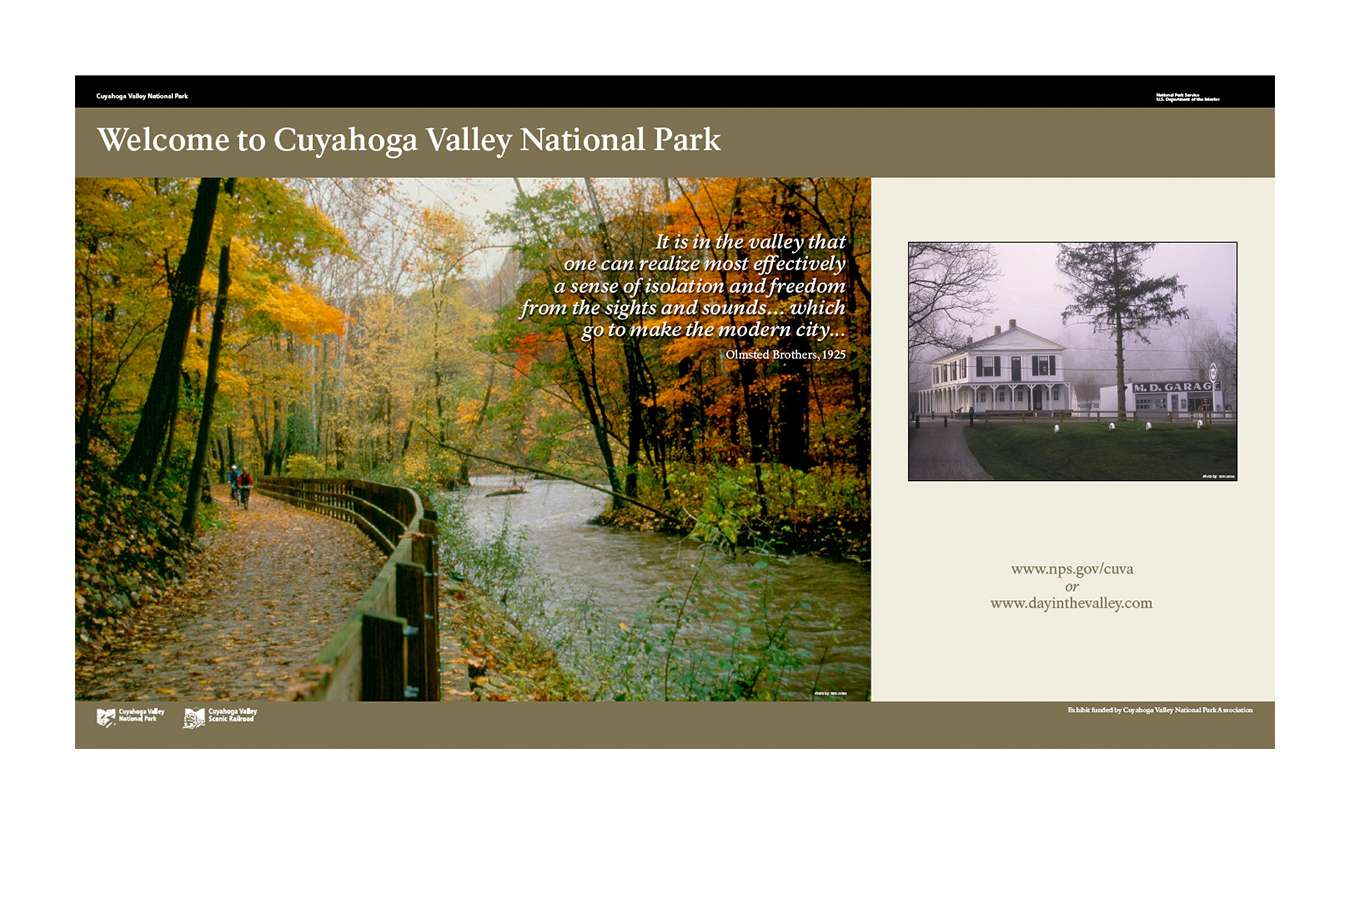 CUVA NPS 2 : Wall panels for visitor centers located in this 50 square mile park along the Cuyahoga River.  The park extends between Cleveland and Akron, Ohio and is the only national park in the state